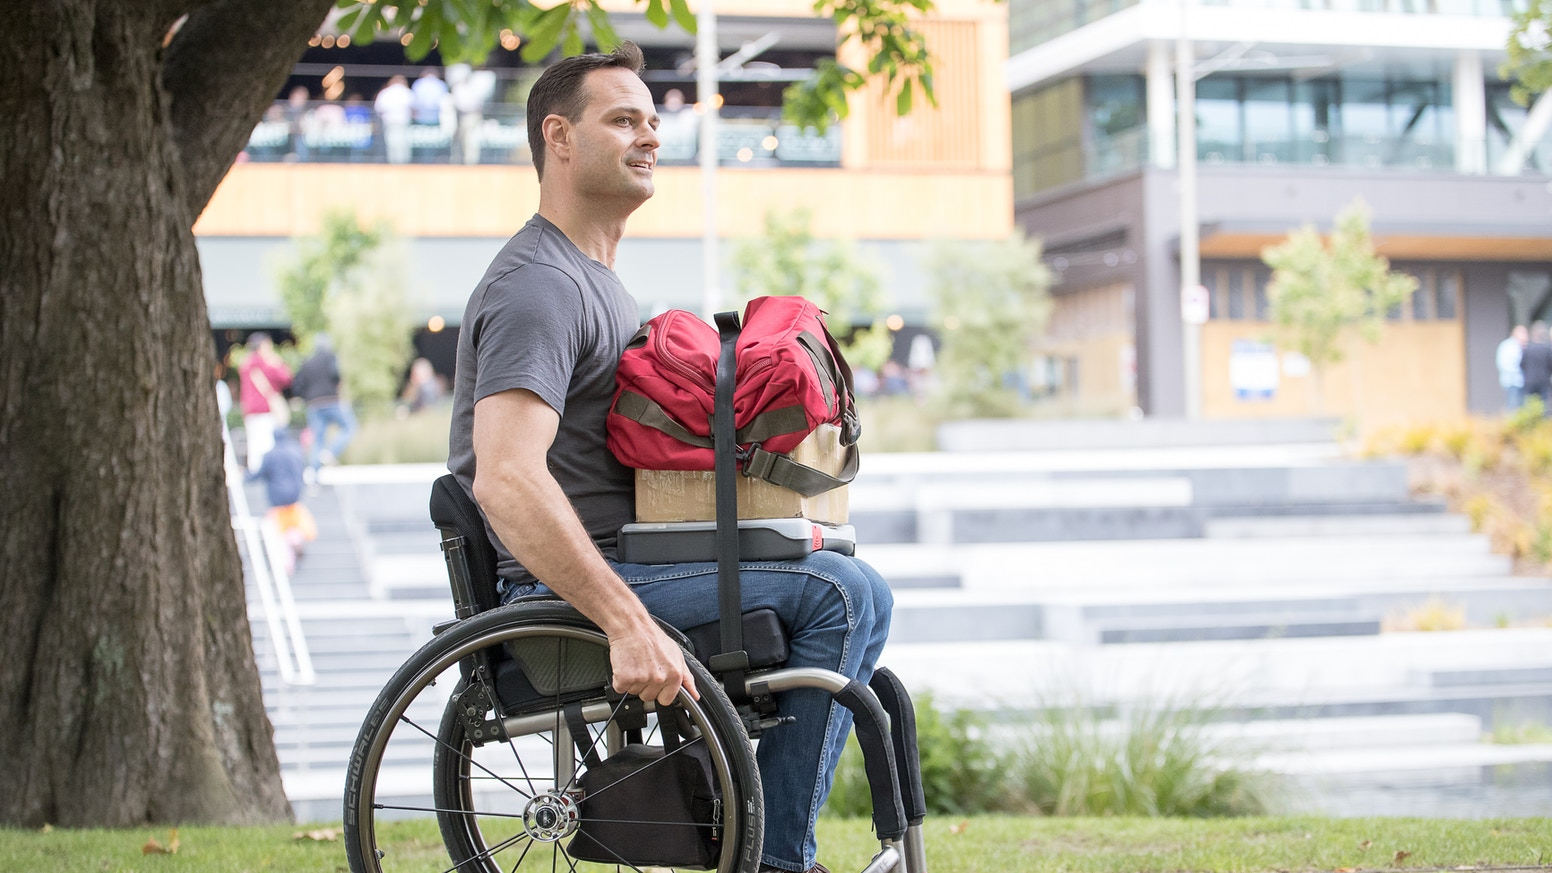 Help us bring freedom and confidence to millions